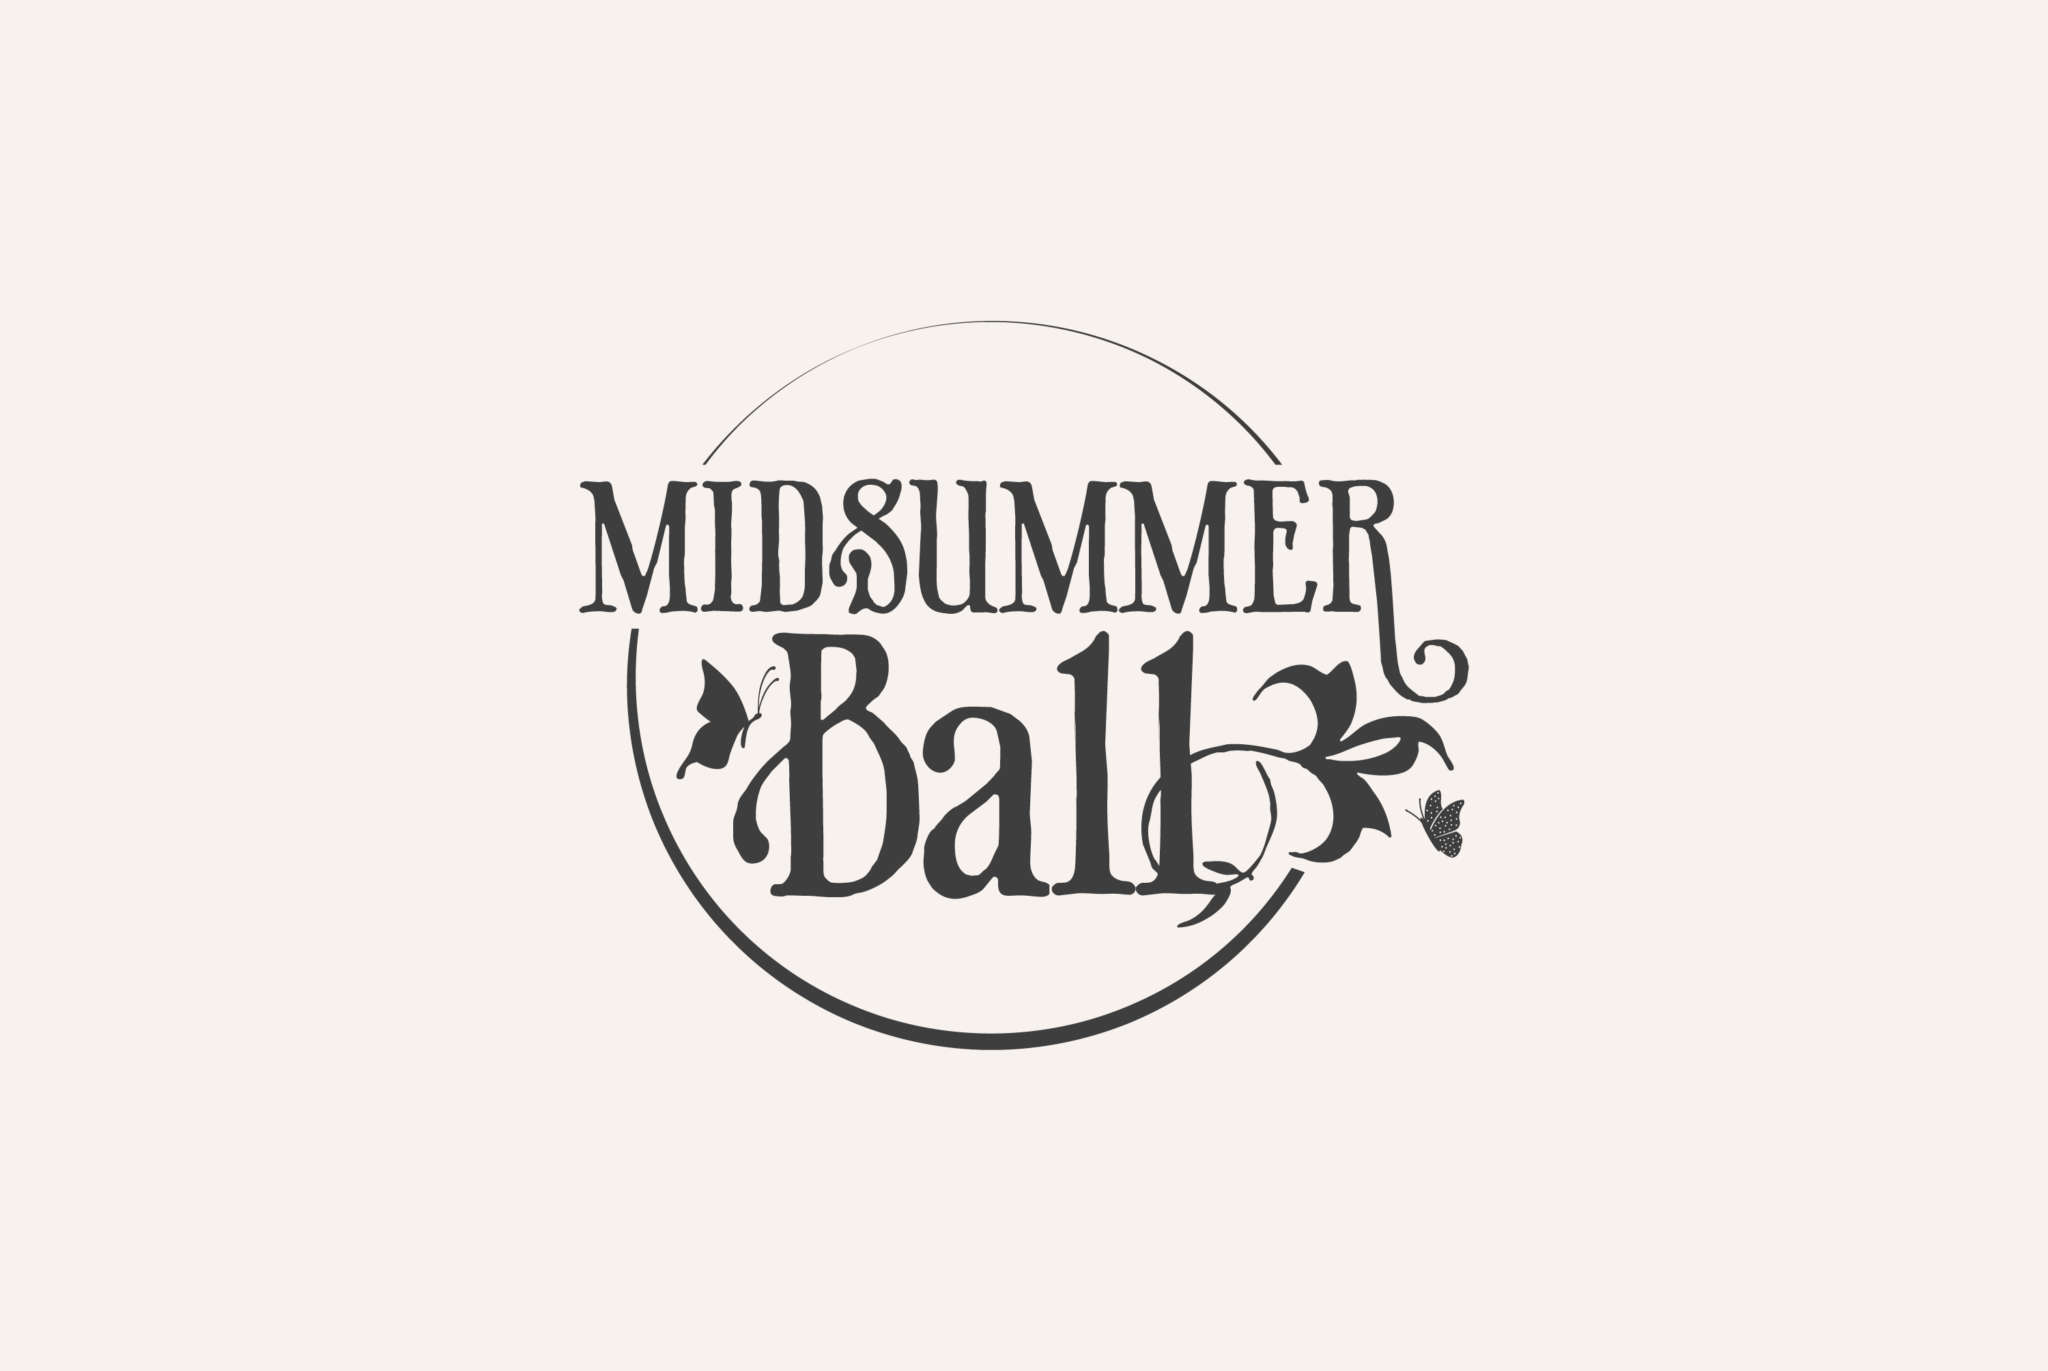 Midsummer-ball